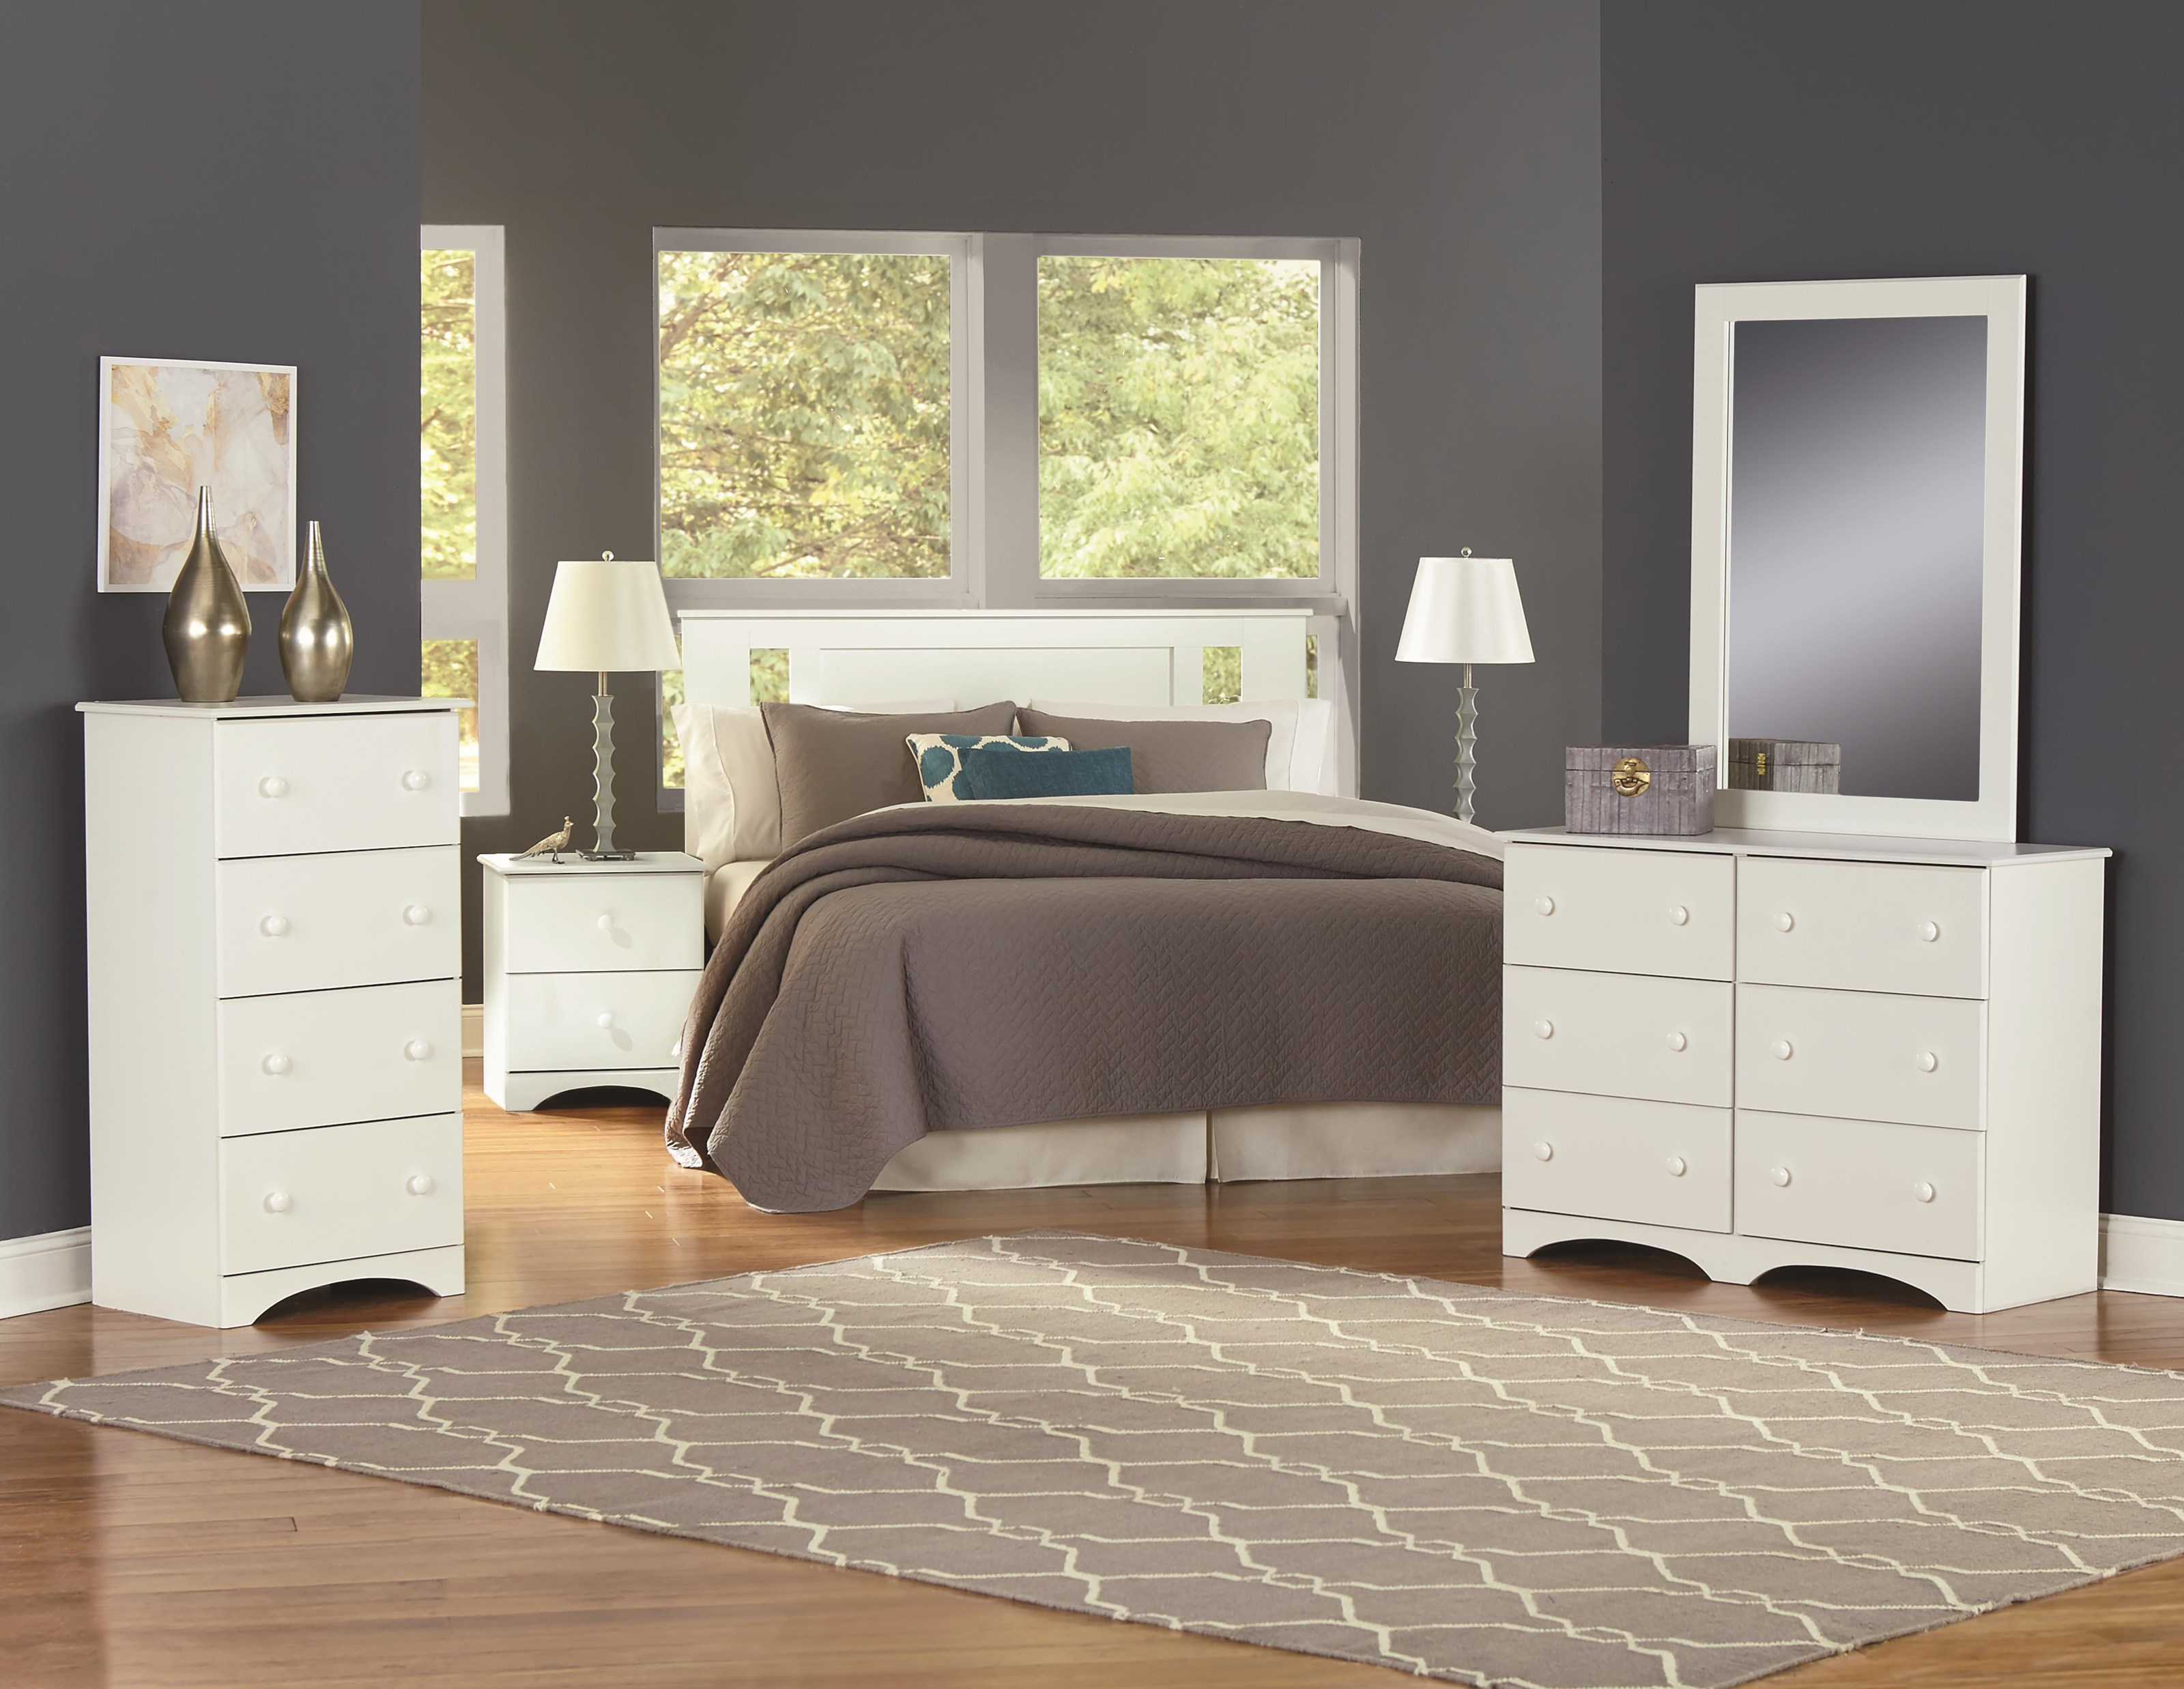 Full Panel Bed with Storage Package